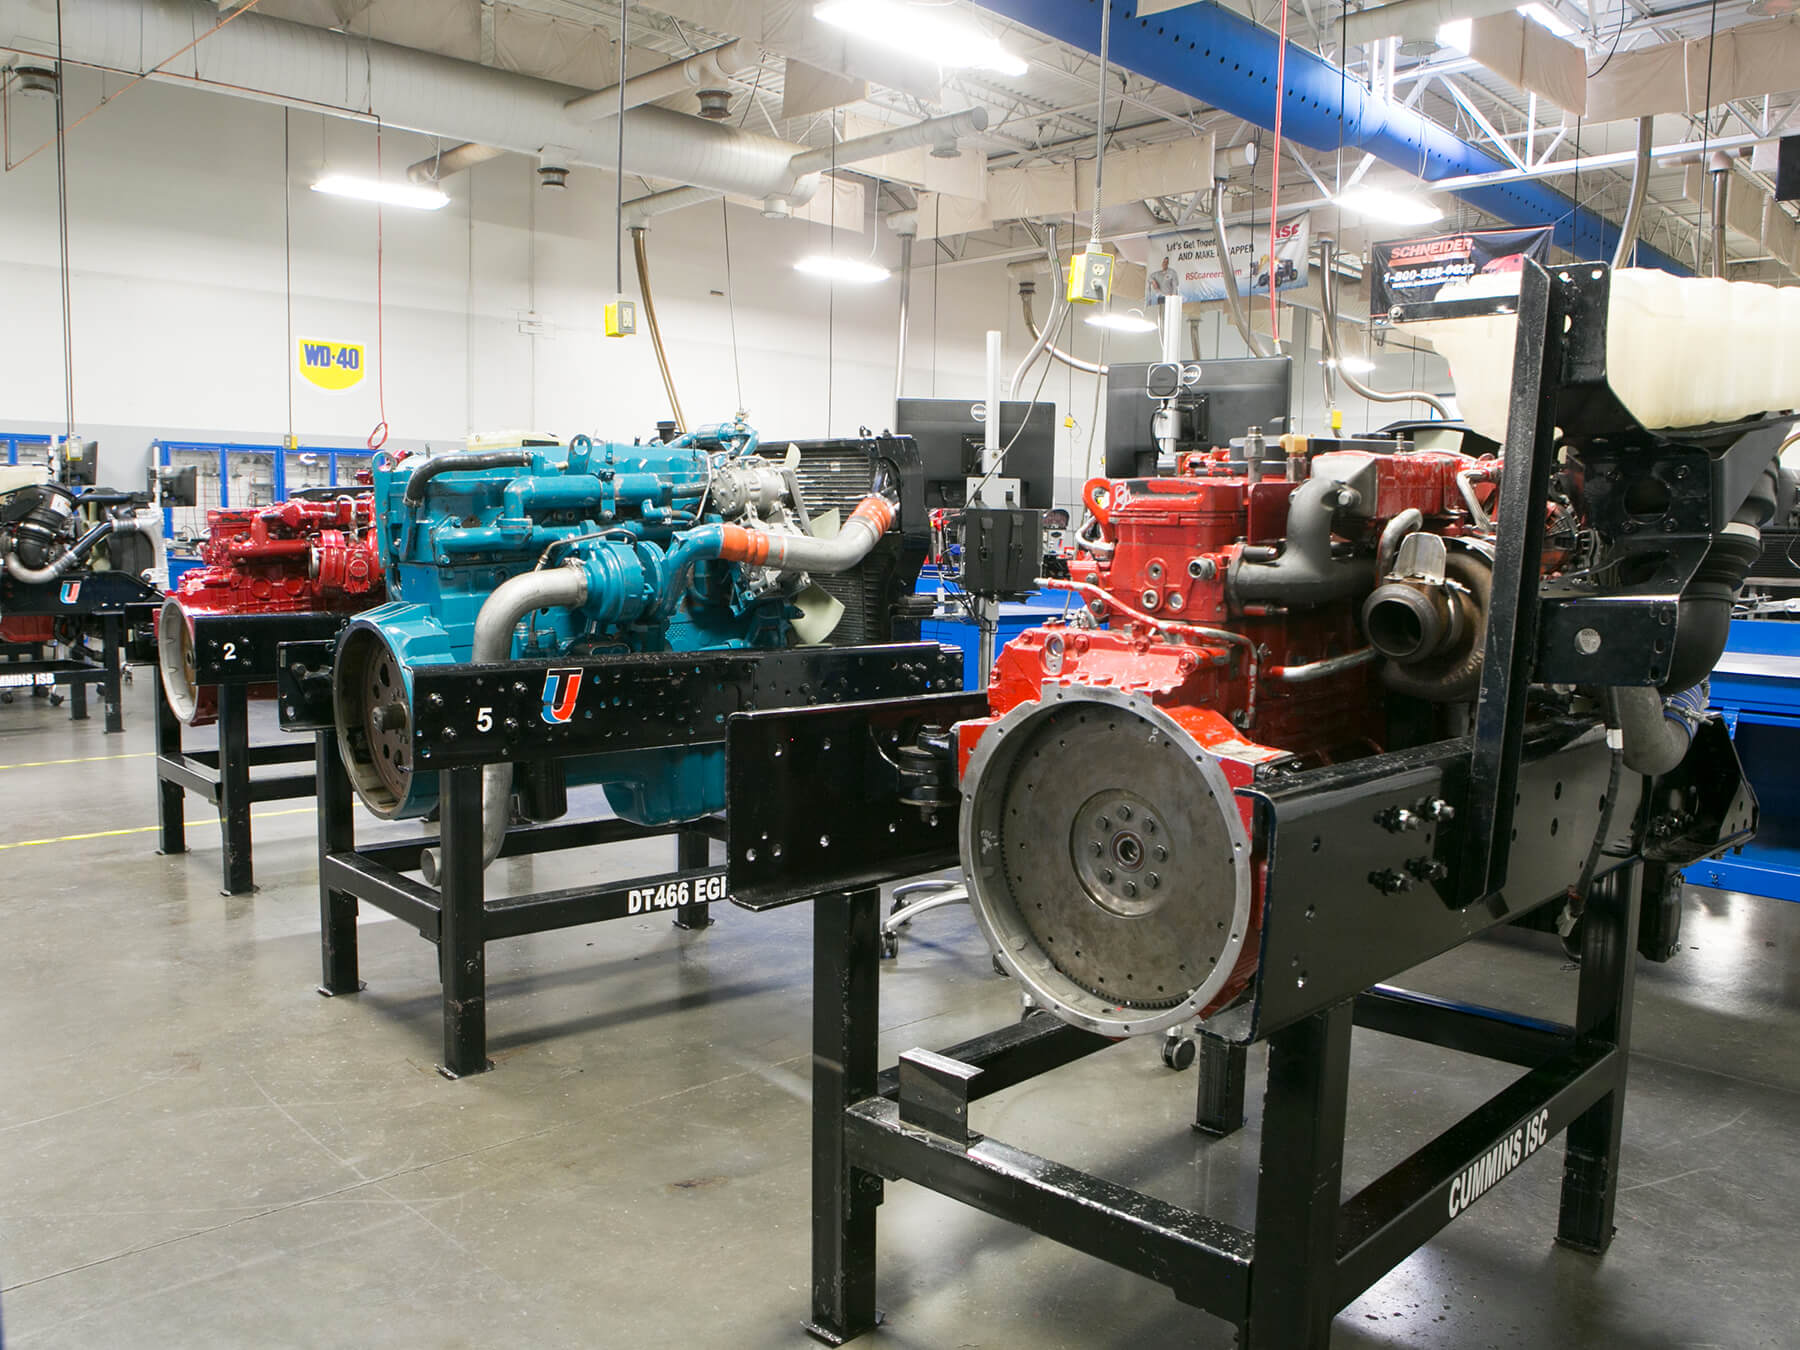 Blue and red Diesel engines in the diesel lab at Avondale Campus